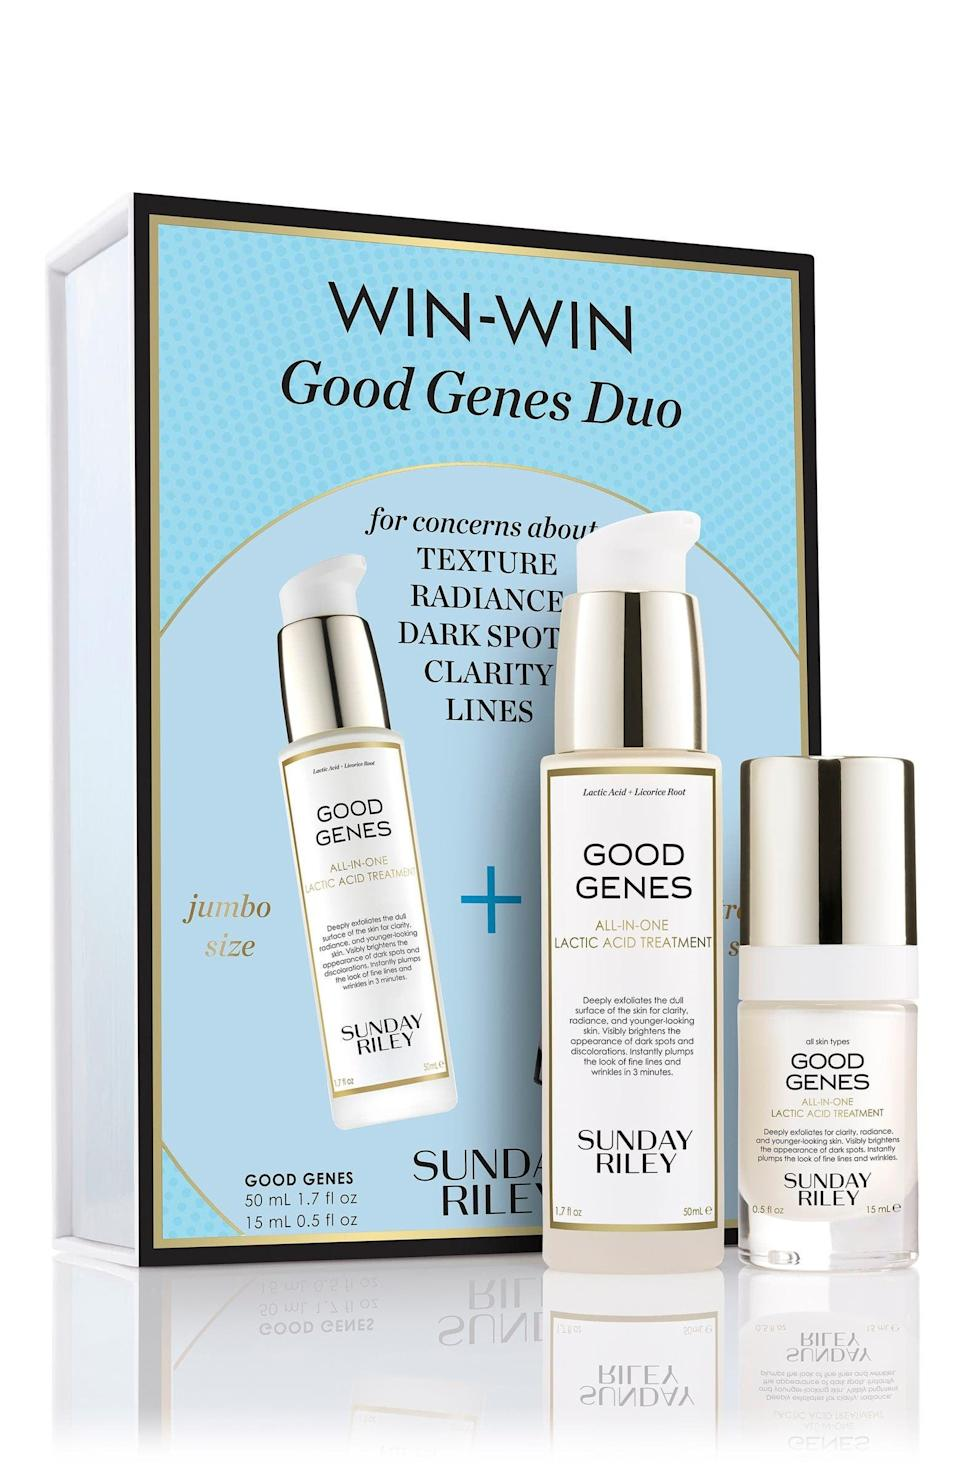 <p><span>Sunday Riley Good Genes All-in-One Lactic Acid Exfoliating Face Treatment Set</span> ($114, originally $184)</p>